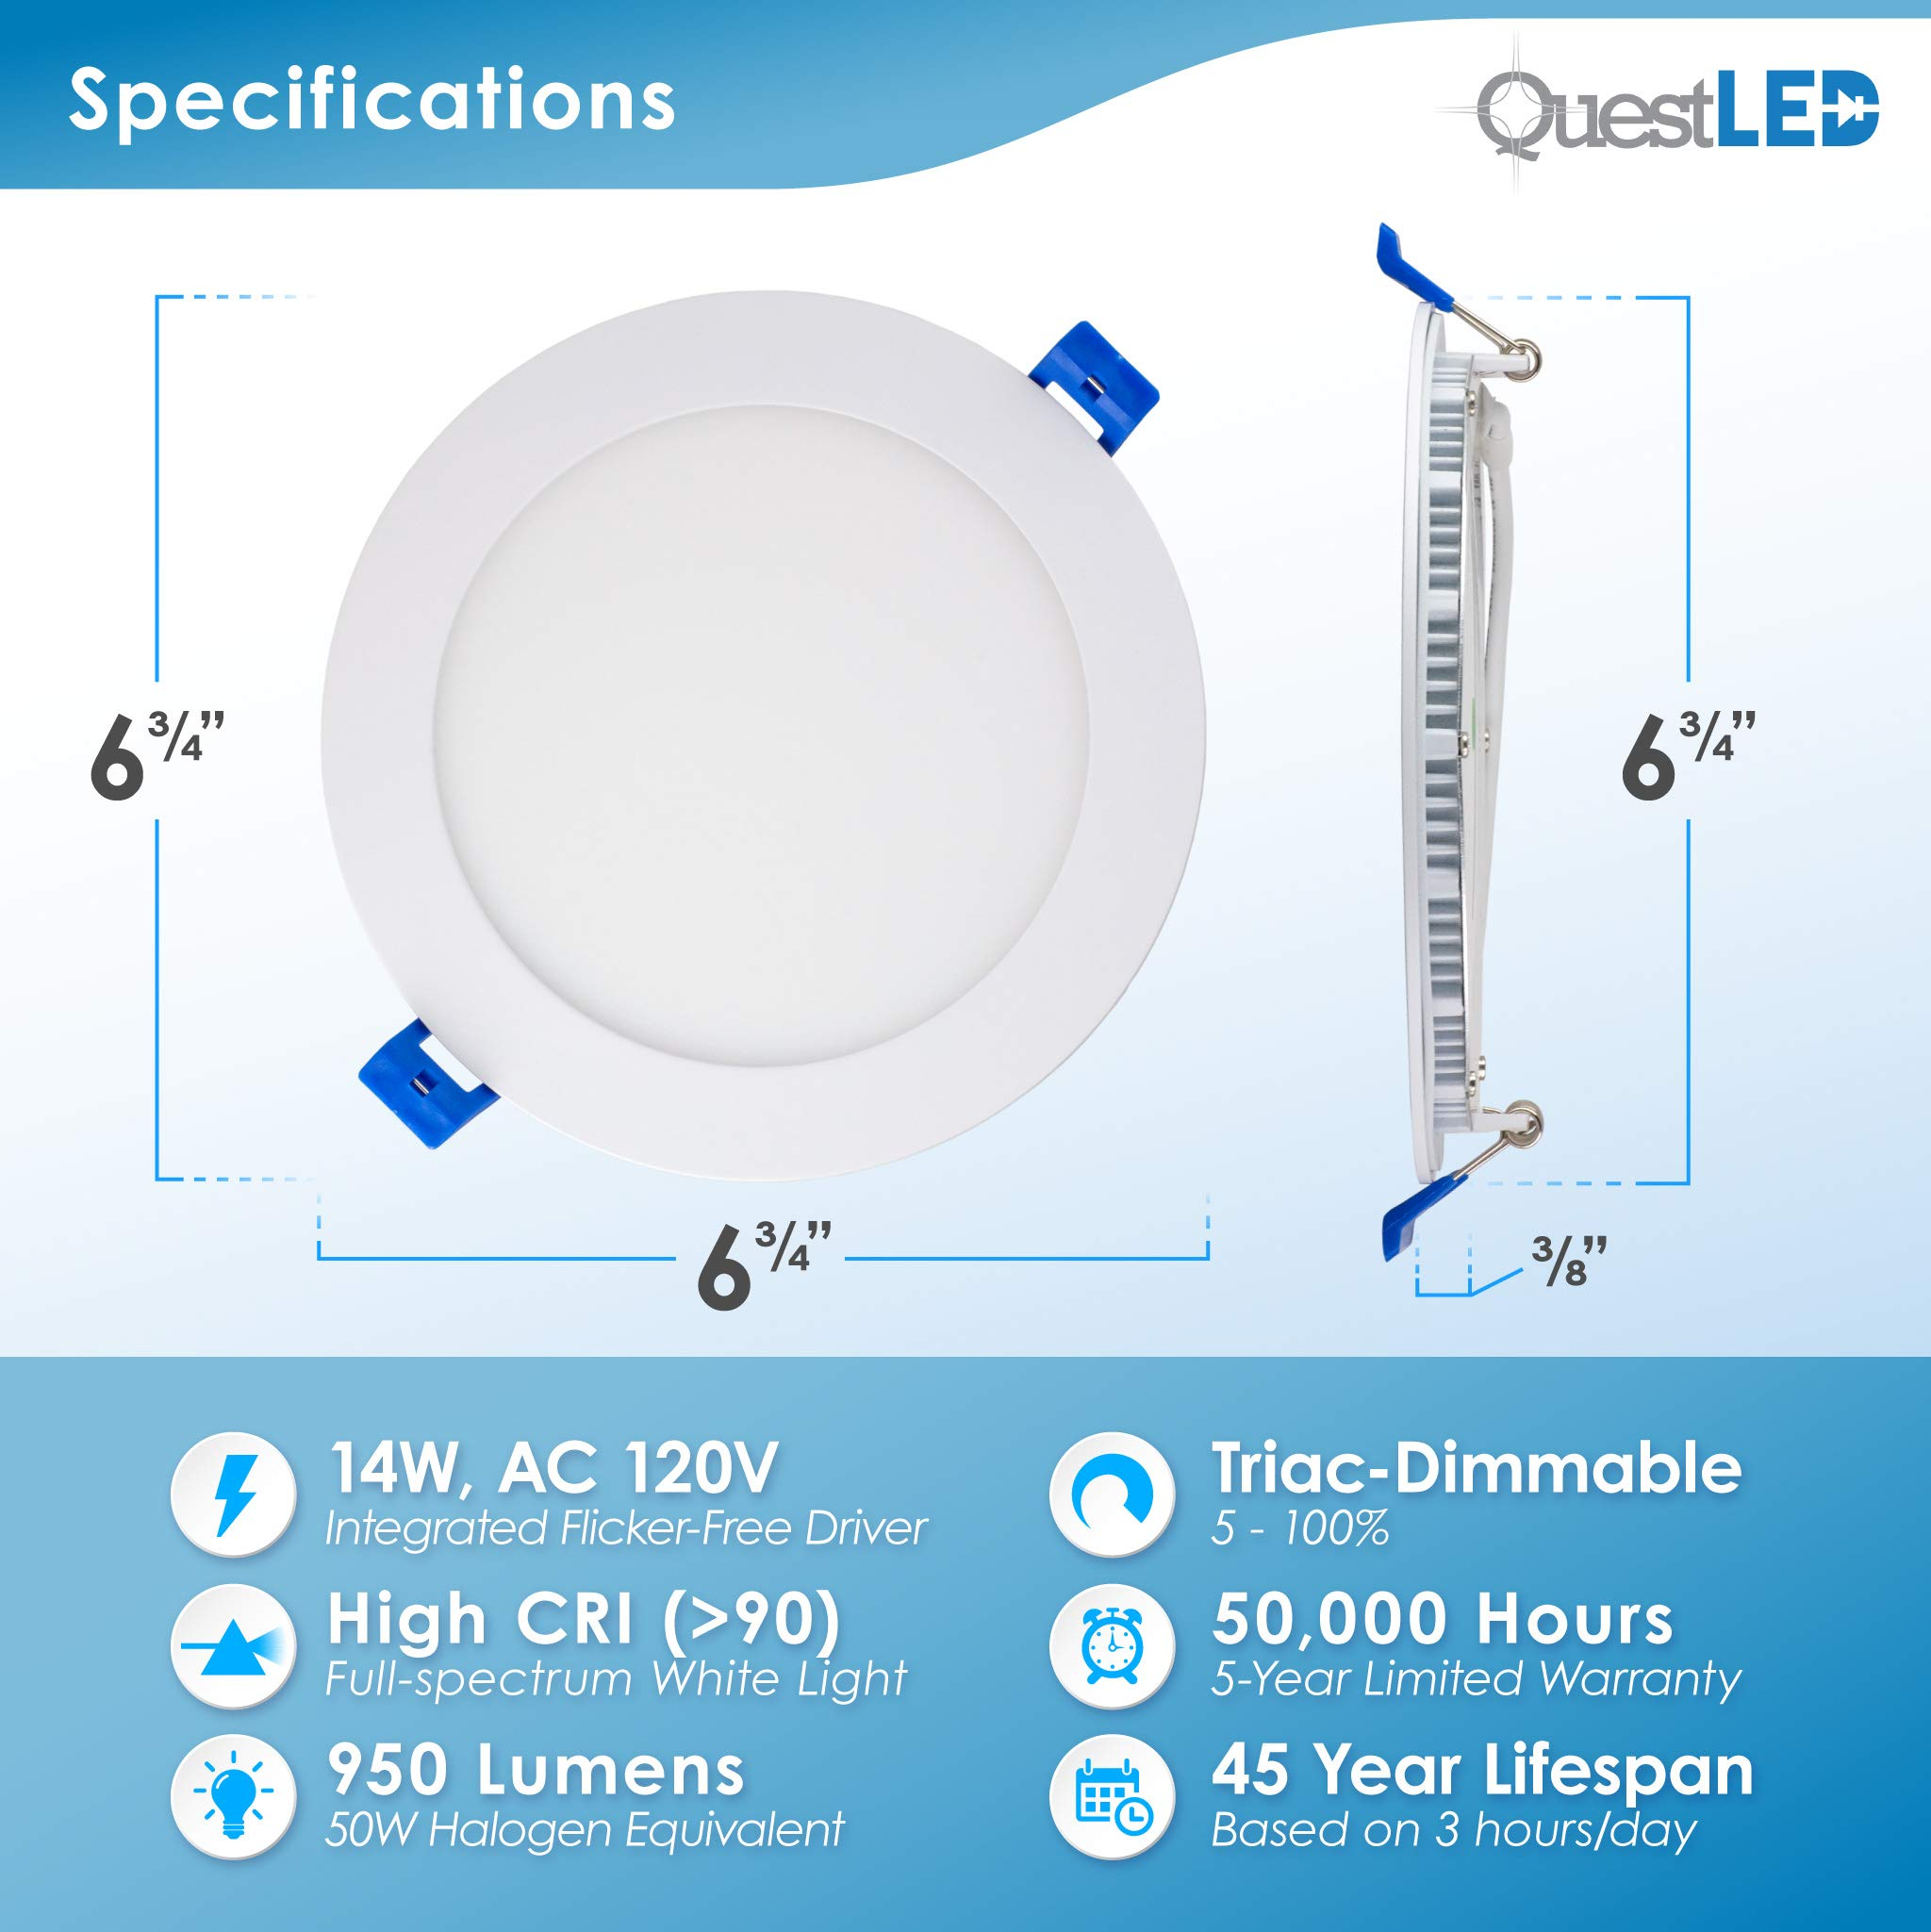 6'' Slim Recessed Panel Ceiling Downlight Ultra Thin Wafer with Junction Box; 14W=50W Equivalent; 3-in-1 CCT: 3000k/4000k/5000k, 950 lumens, 120V, Dimmable, IC Rated, ETL/ES/JA8 (18 Pack) by Quest LED (Image #3)